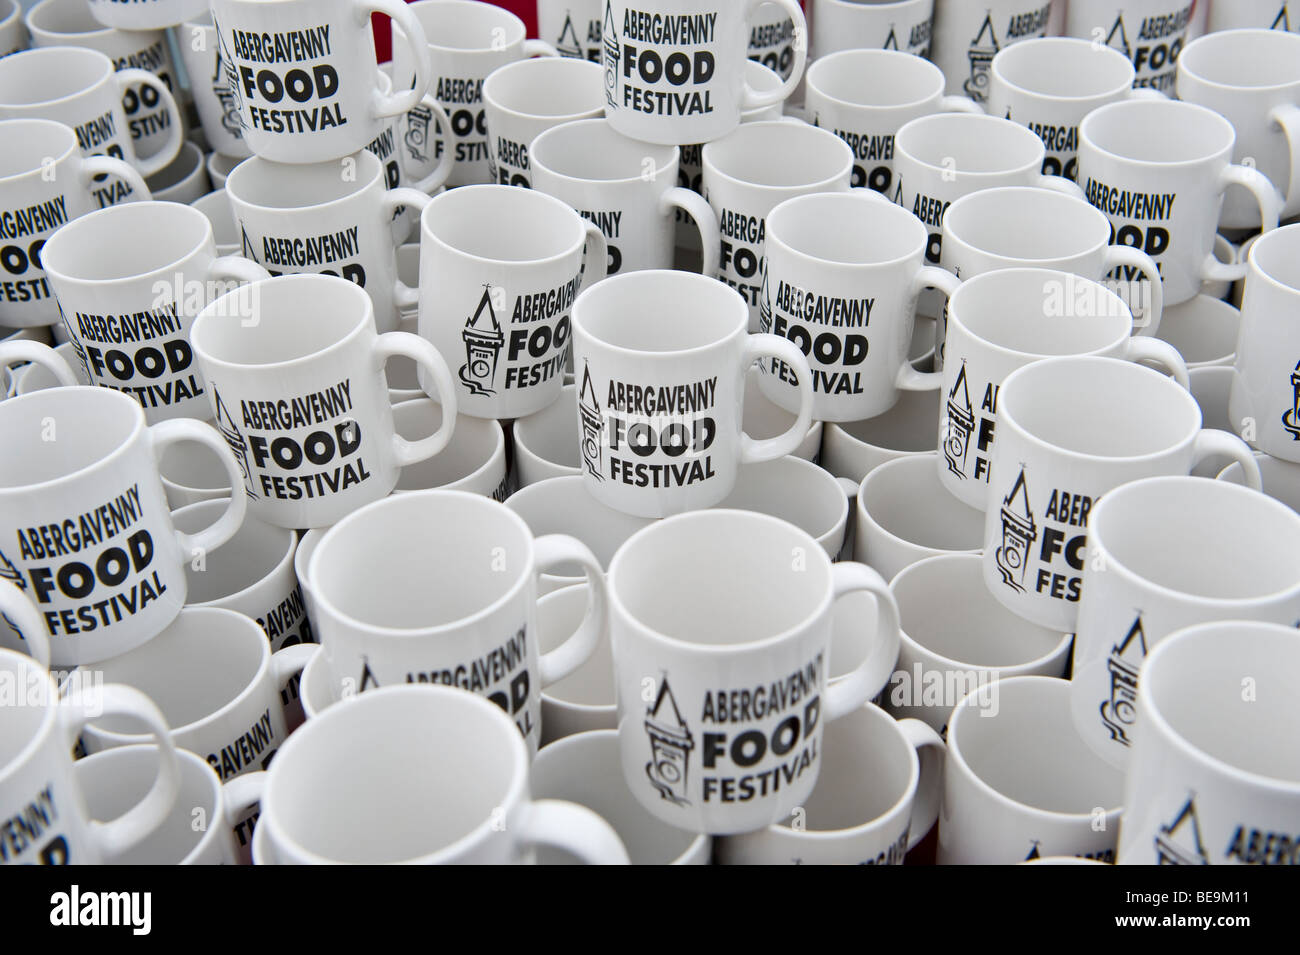 Promotional mugs for sale at Abergavenny Food Festival Monmouthshire South Wales UK - Stock Image